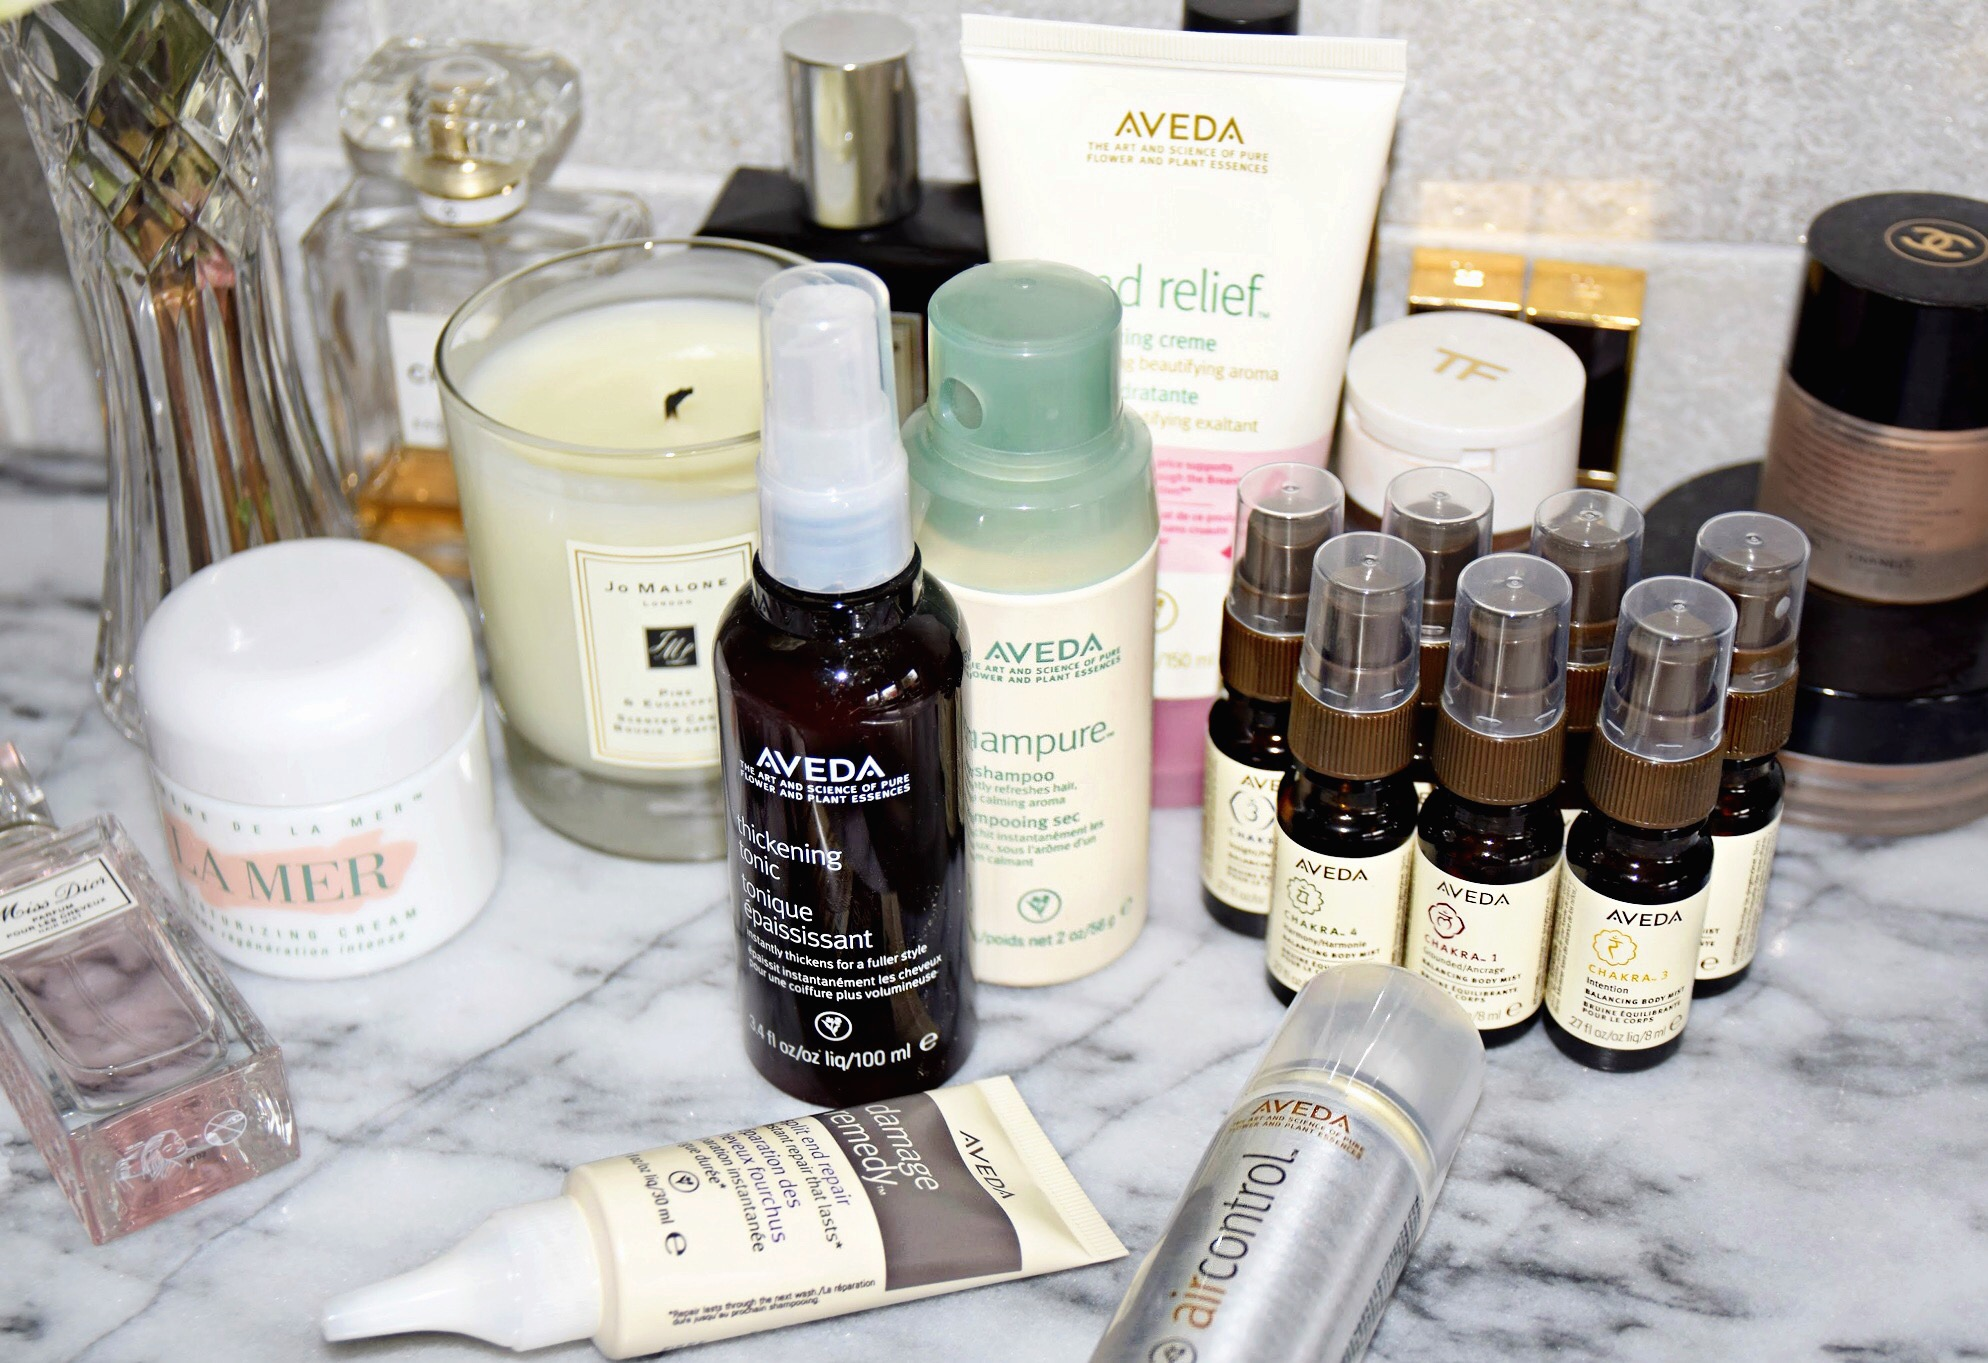 All I Want Is Aveda // Aveda Hair Styling Products // Aveda Fall Colors // Aveda Beauty, Makeup and Cosmetics // Beauty Blogger Daphne Blunt: To Style, With Love